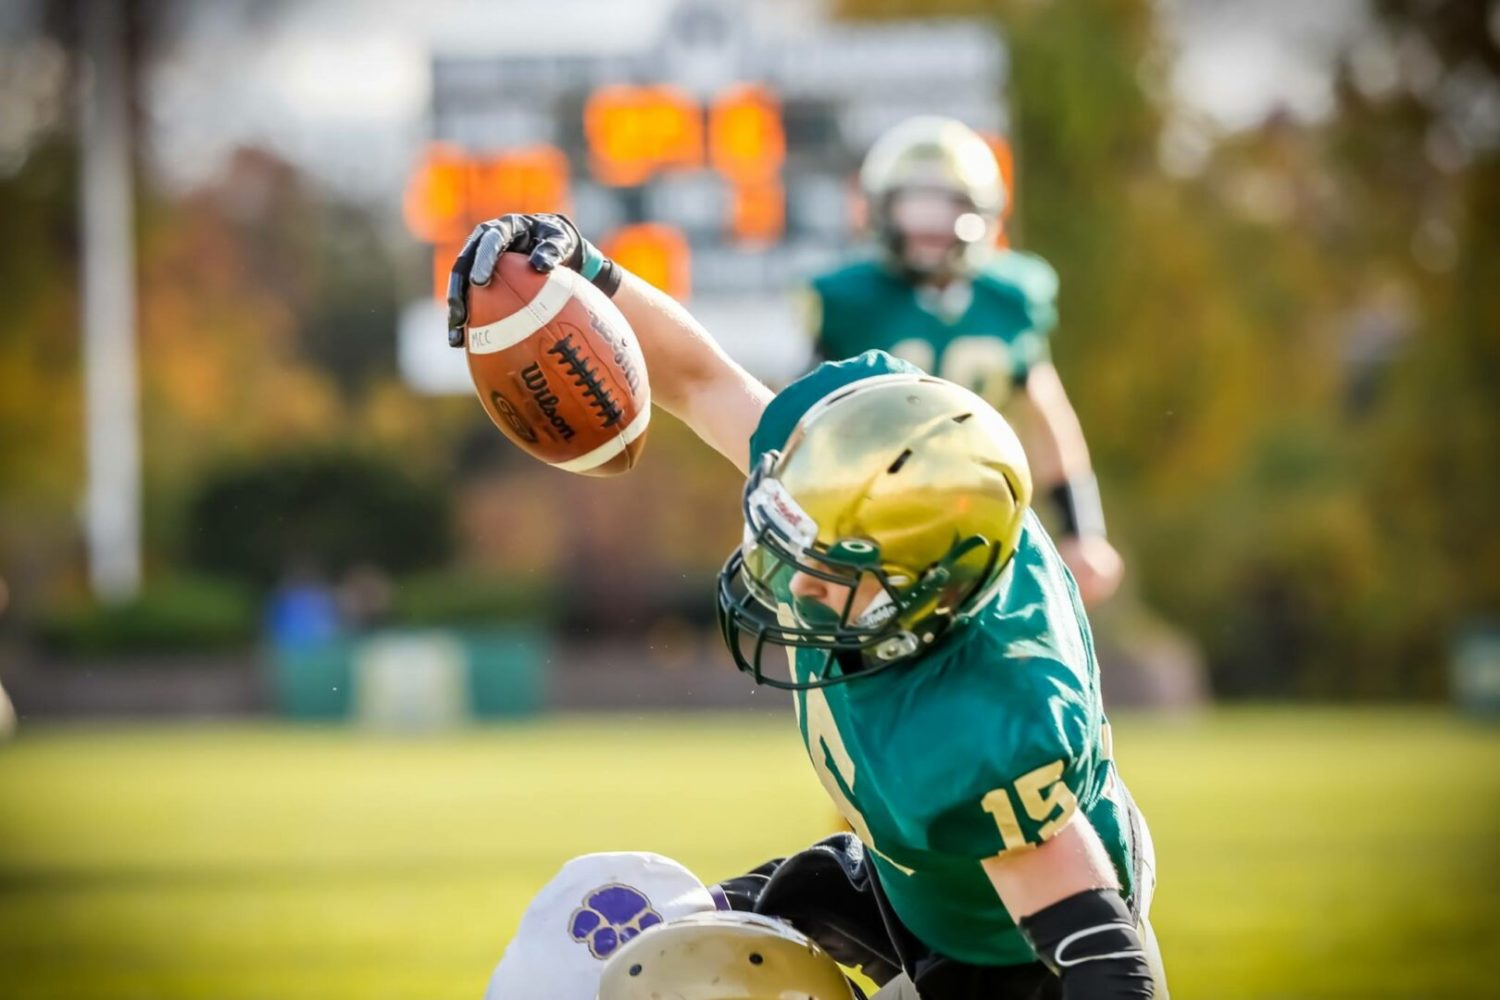 Crusaders ready for state football semifinal rematch against St. Ignace